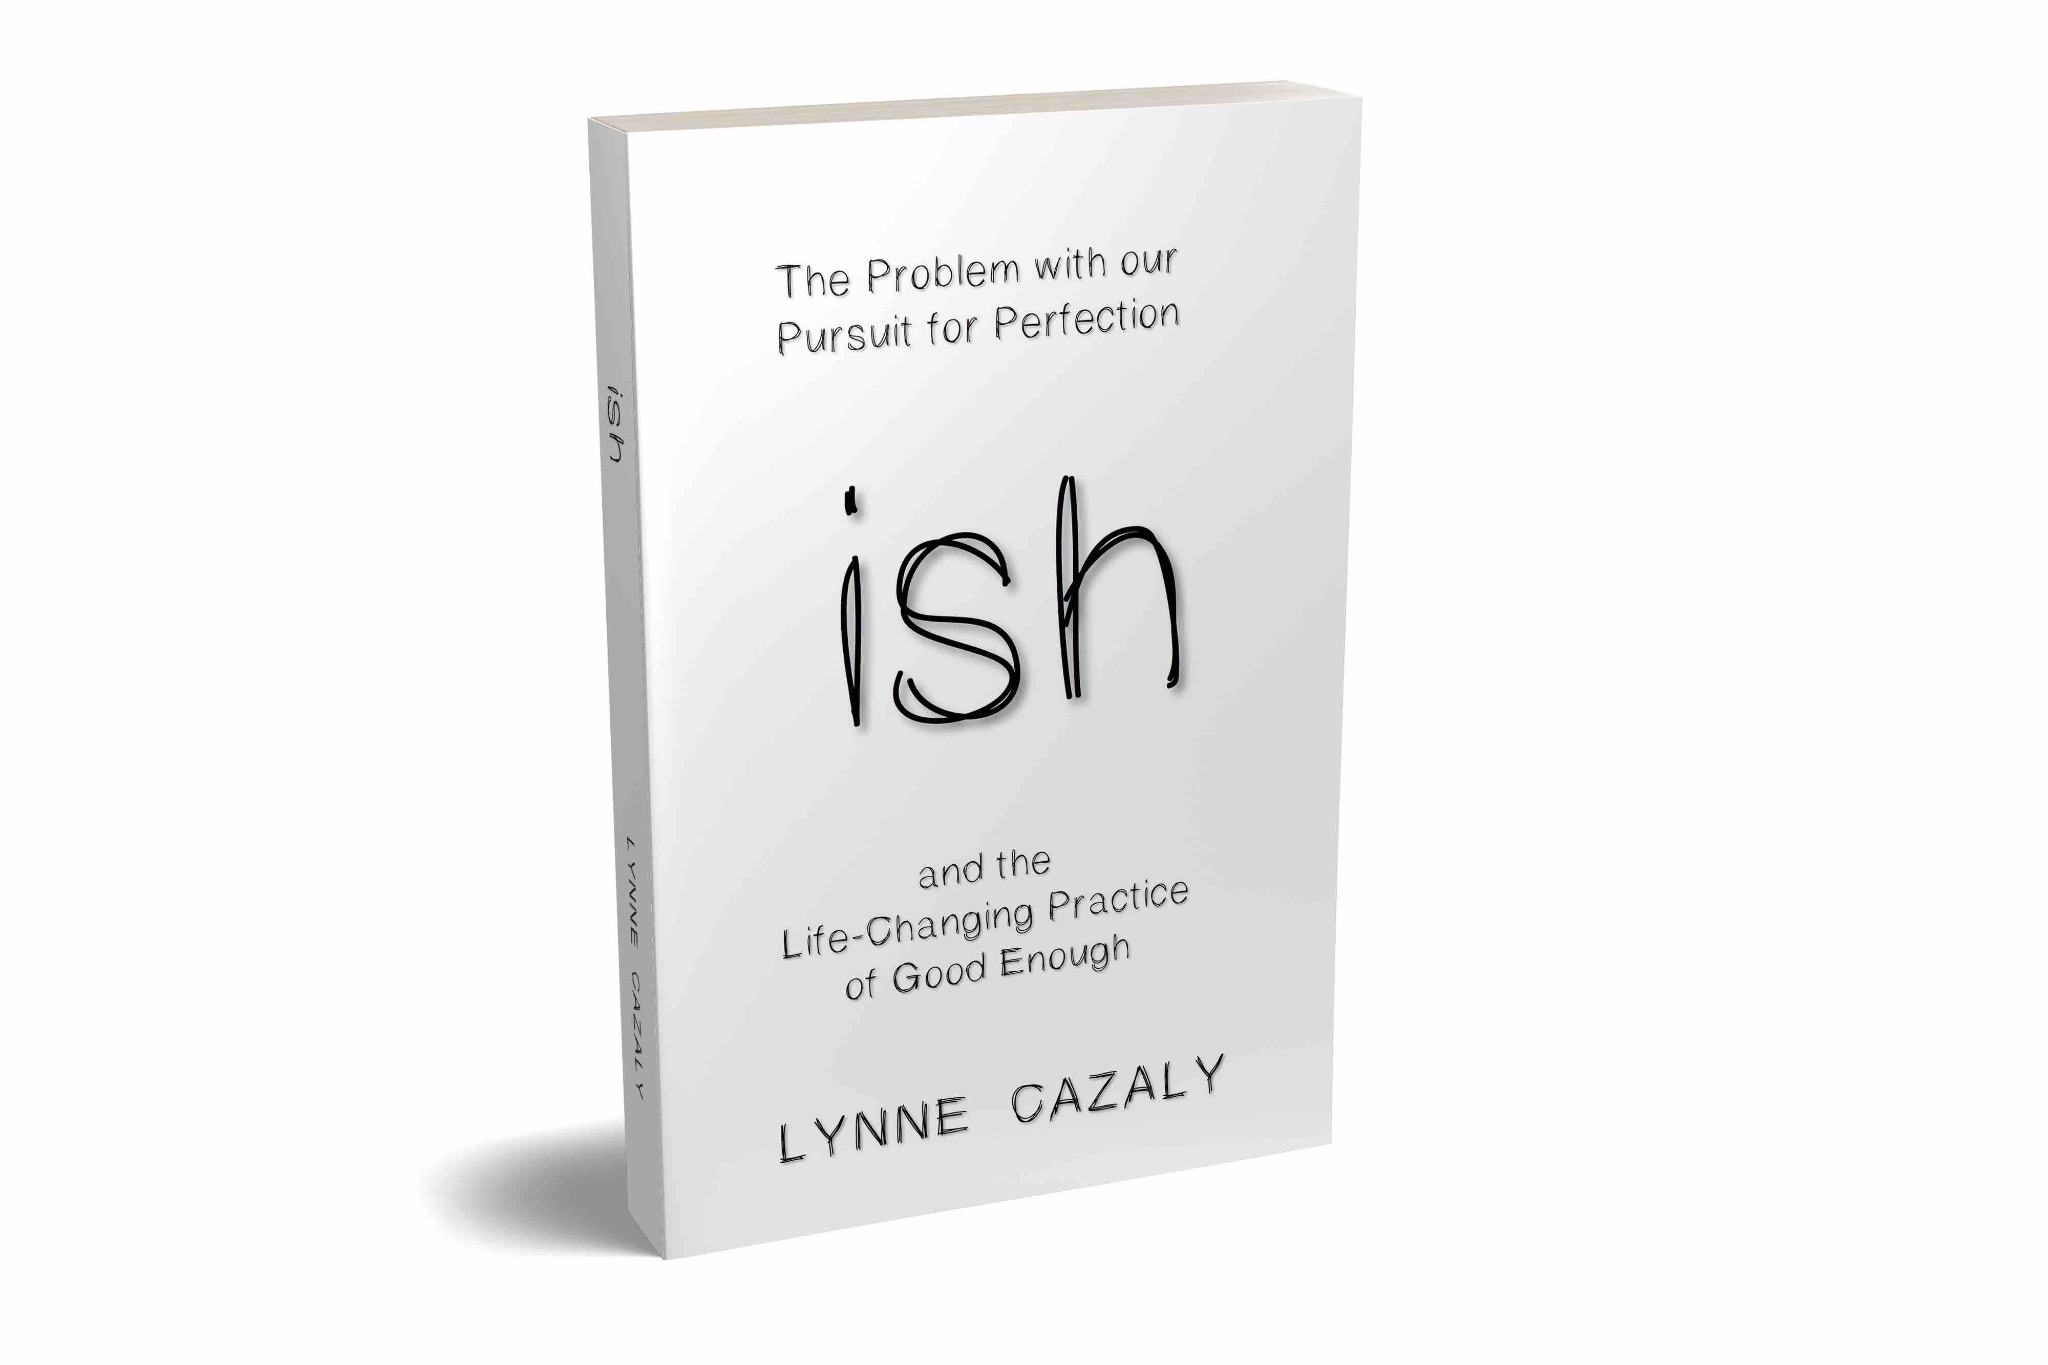 ish : The Problem with our Pursuit for Perfection and the Life-Changing Practice of Good Enough